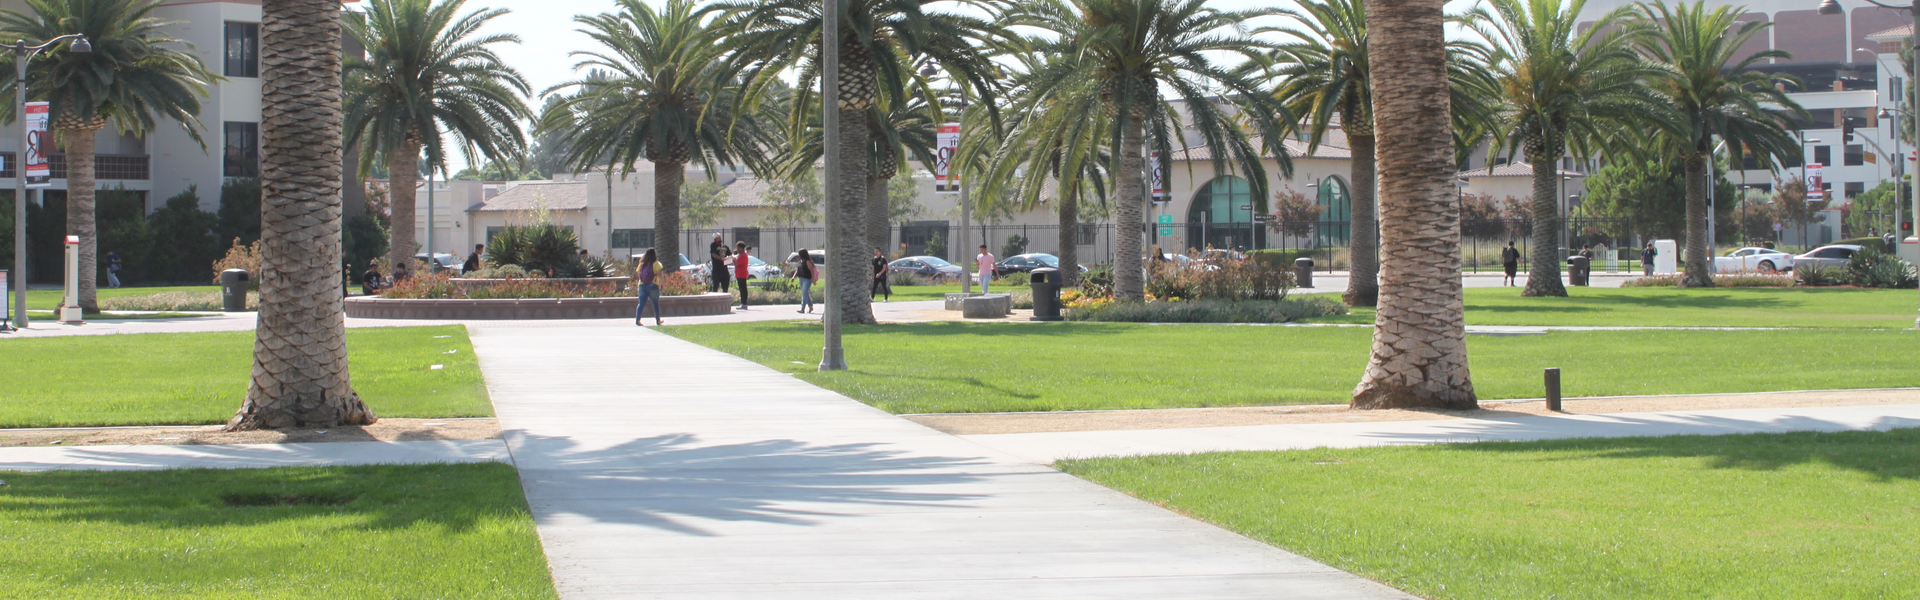 A shot of a walkway on the LAC campus.